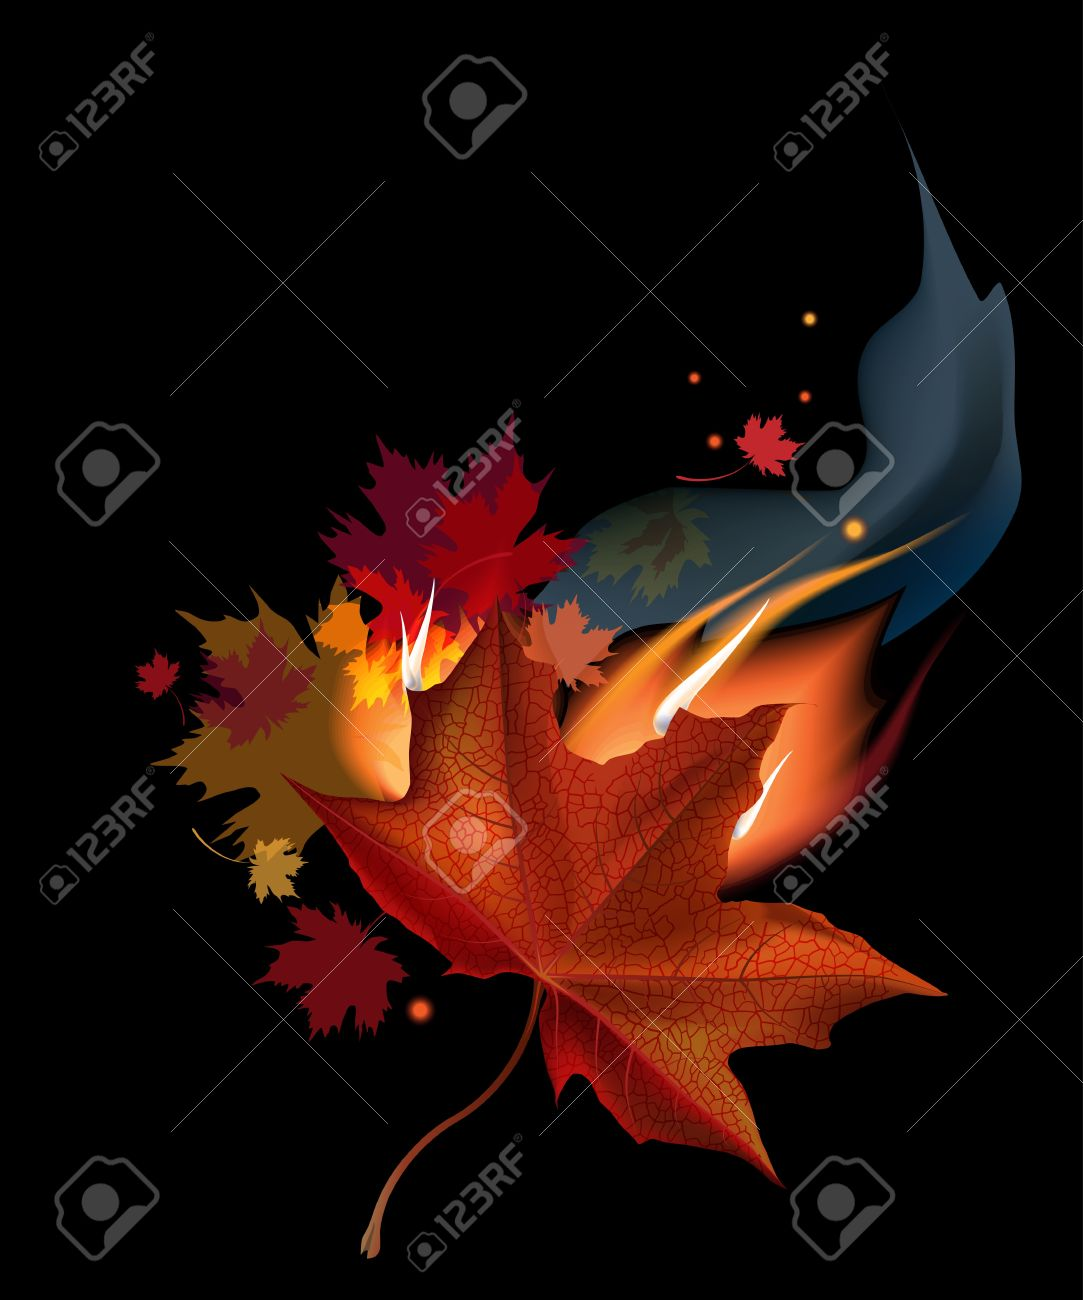 Autumn Maple Leaf in Fire